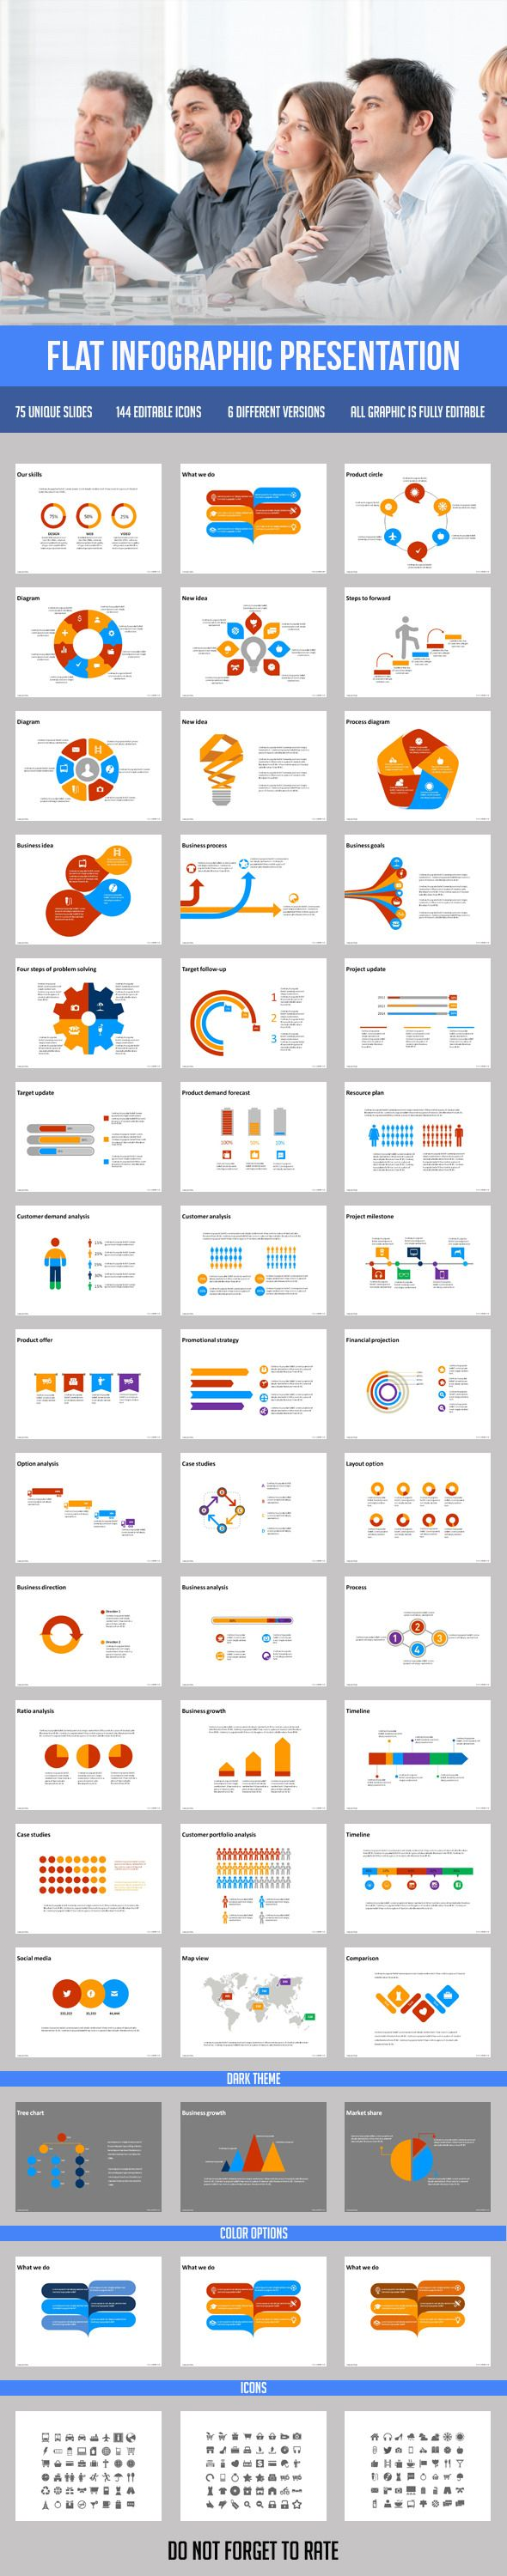 ideas about powerpoint presentations flat infographic presentation